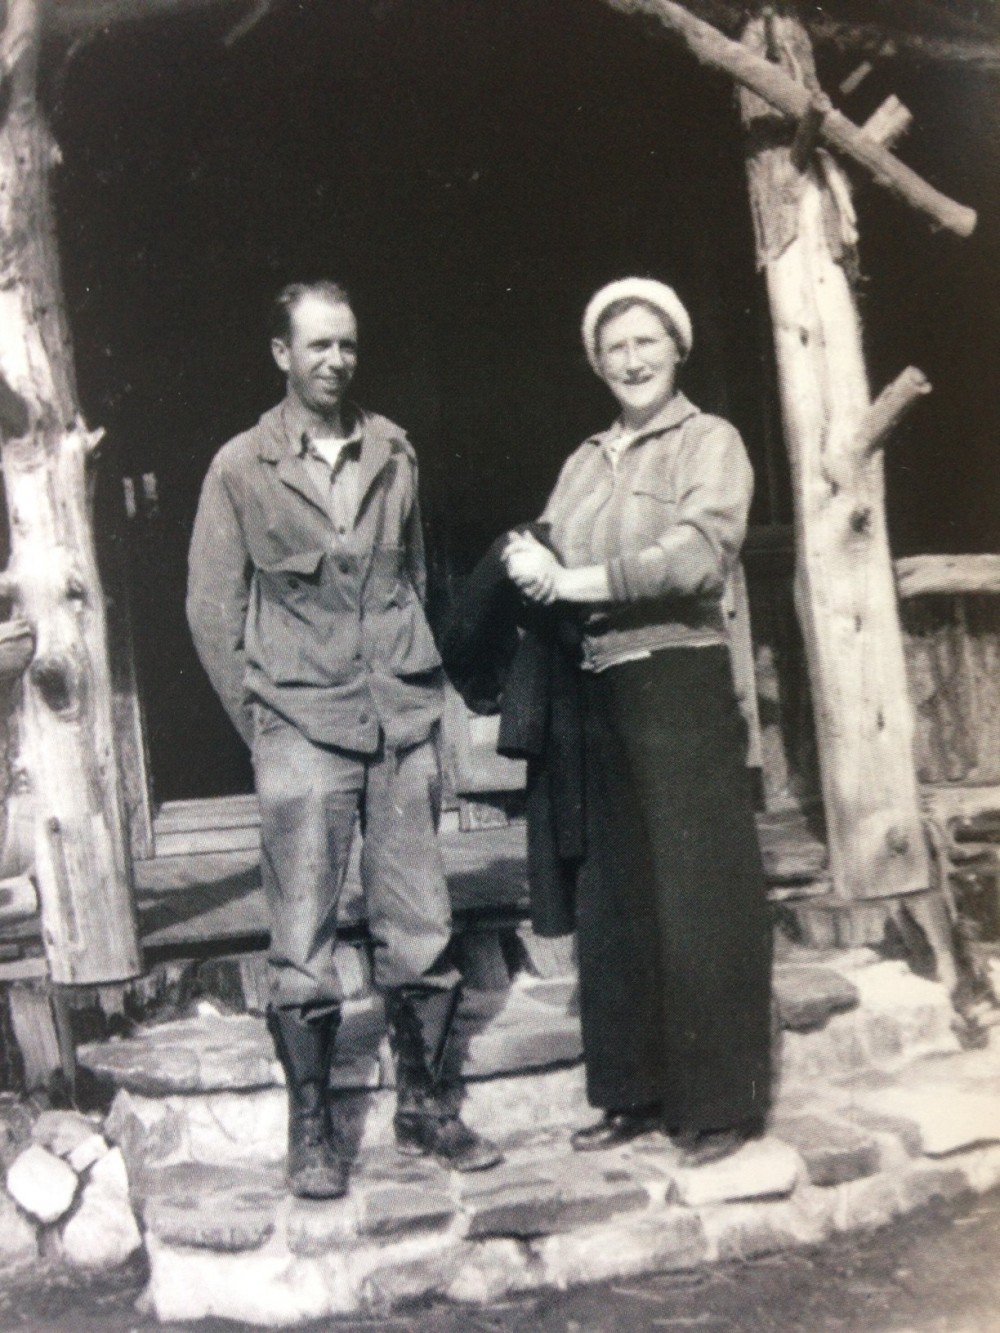 Homer and Frances in front of the old general store